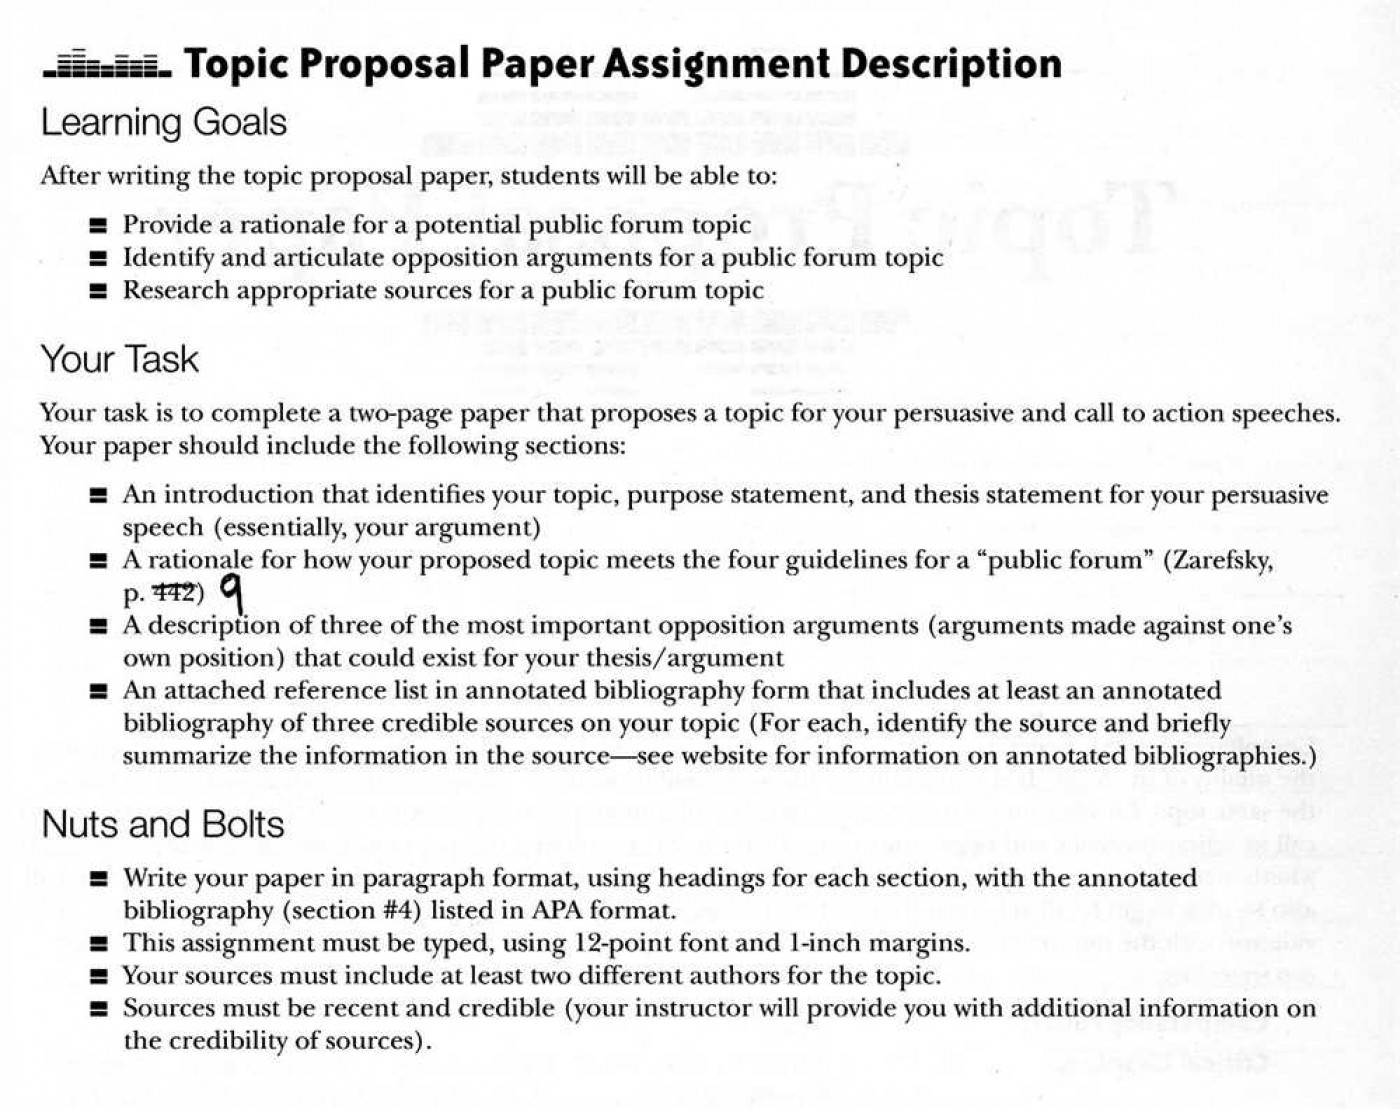 010 Ecology Research 8841976 Topics For Arguments Best Argument Papers Controversial Medical Argumentative Paper Sample 1400